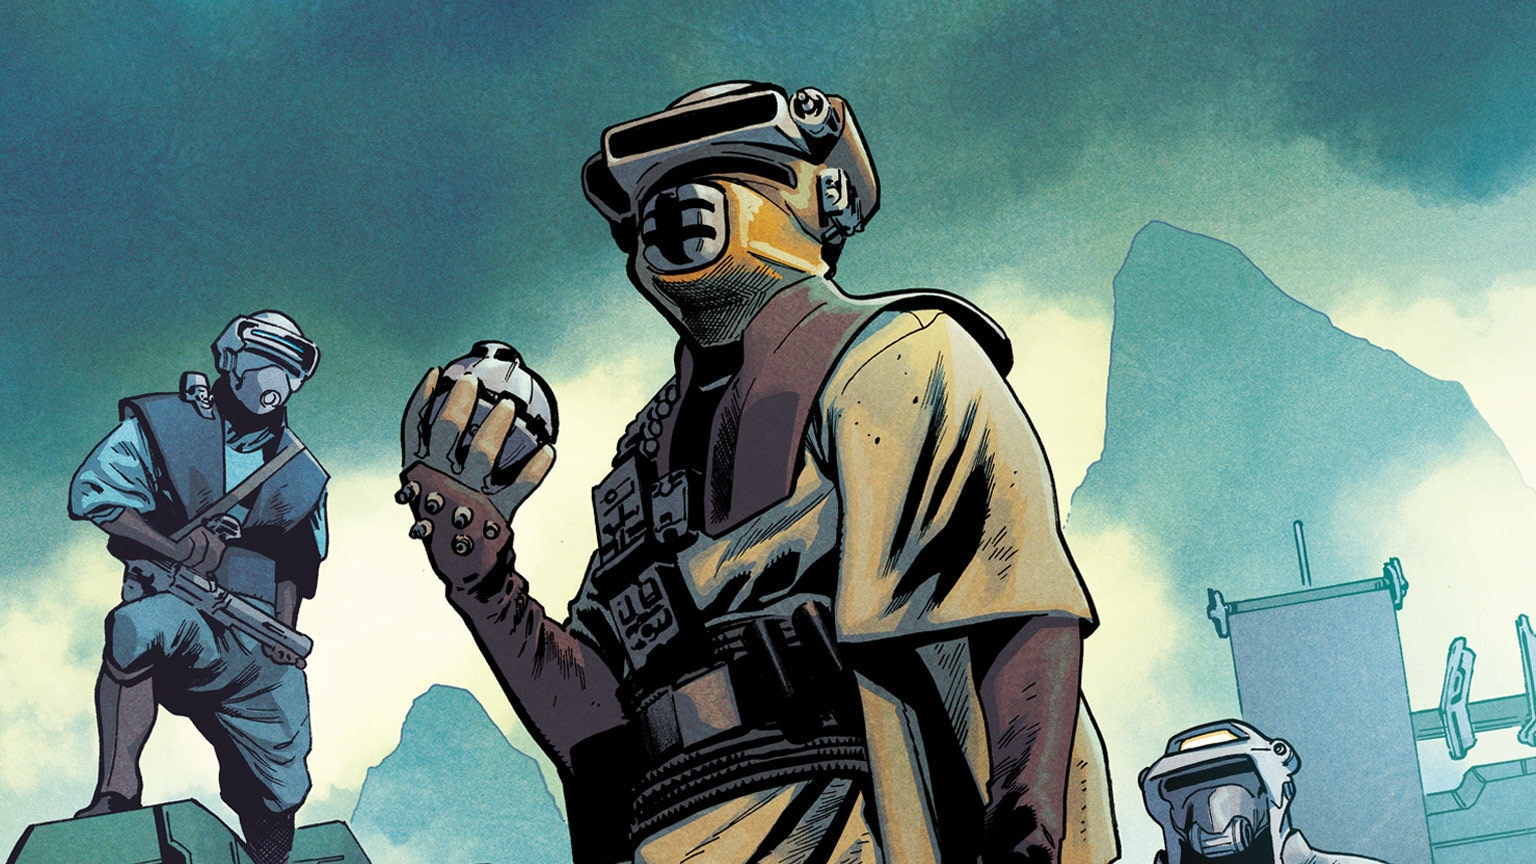 The Fight for Han Solo Heats Up in Marvel's September 2021 Star Wars Comics – Exclusive